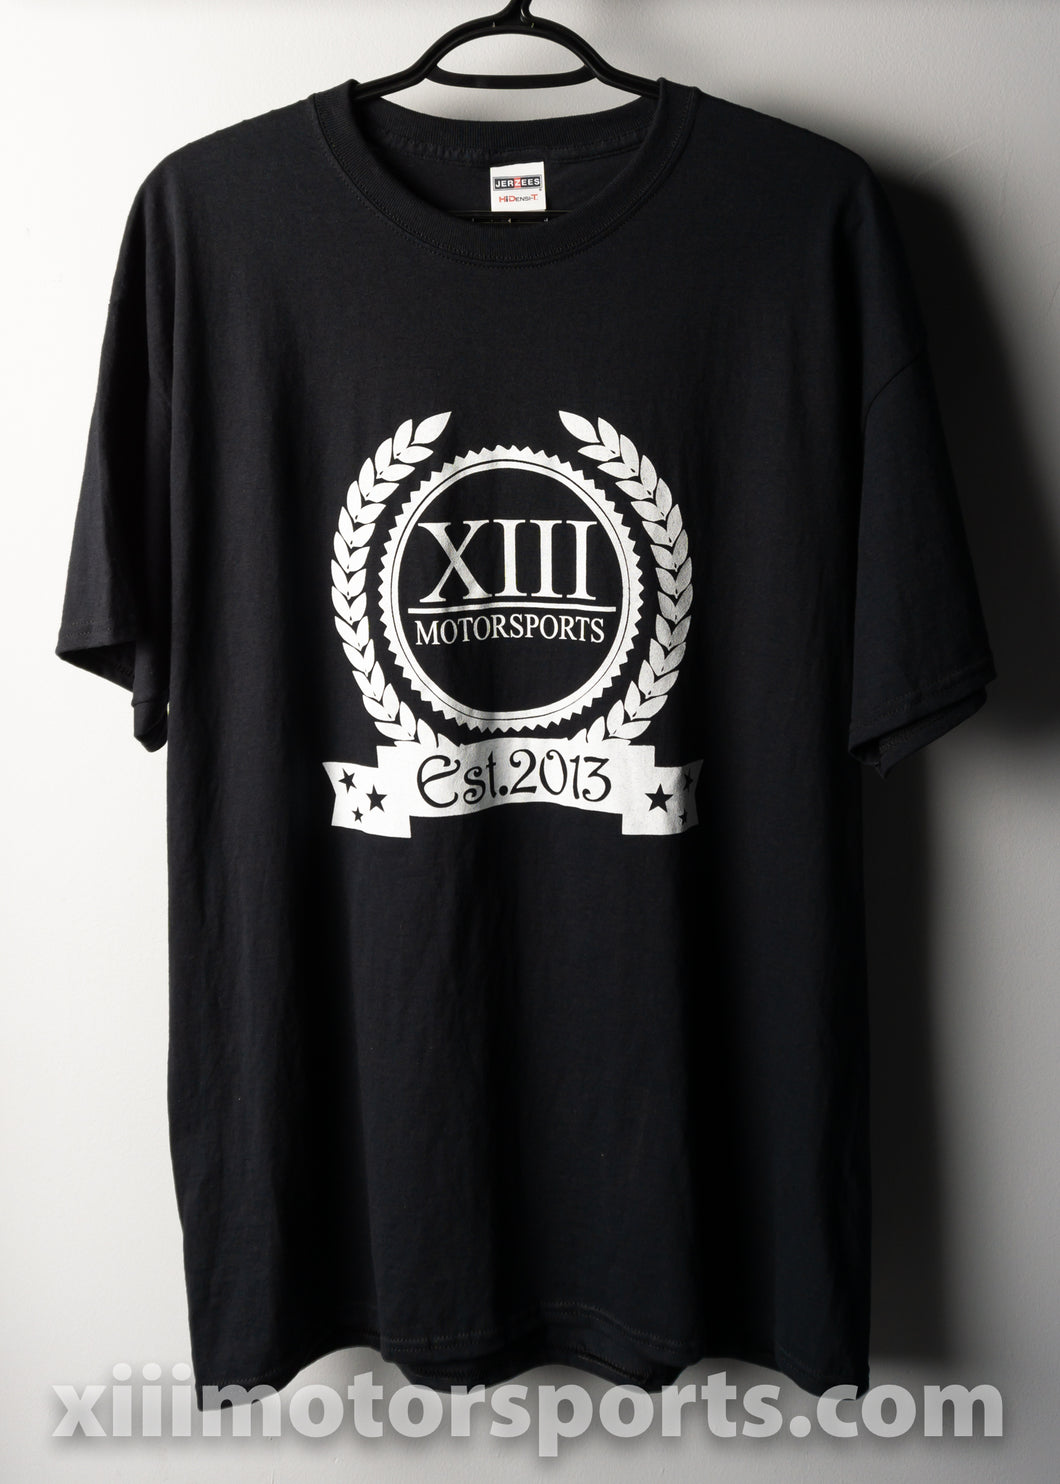 XIIIMOTORSPORTS T-shirt Large Crest